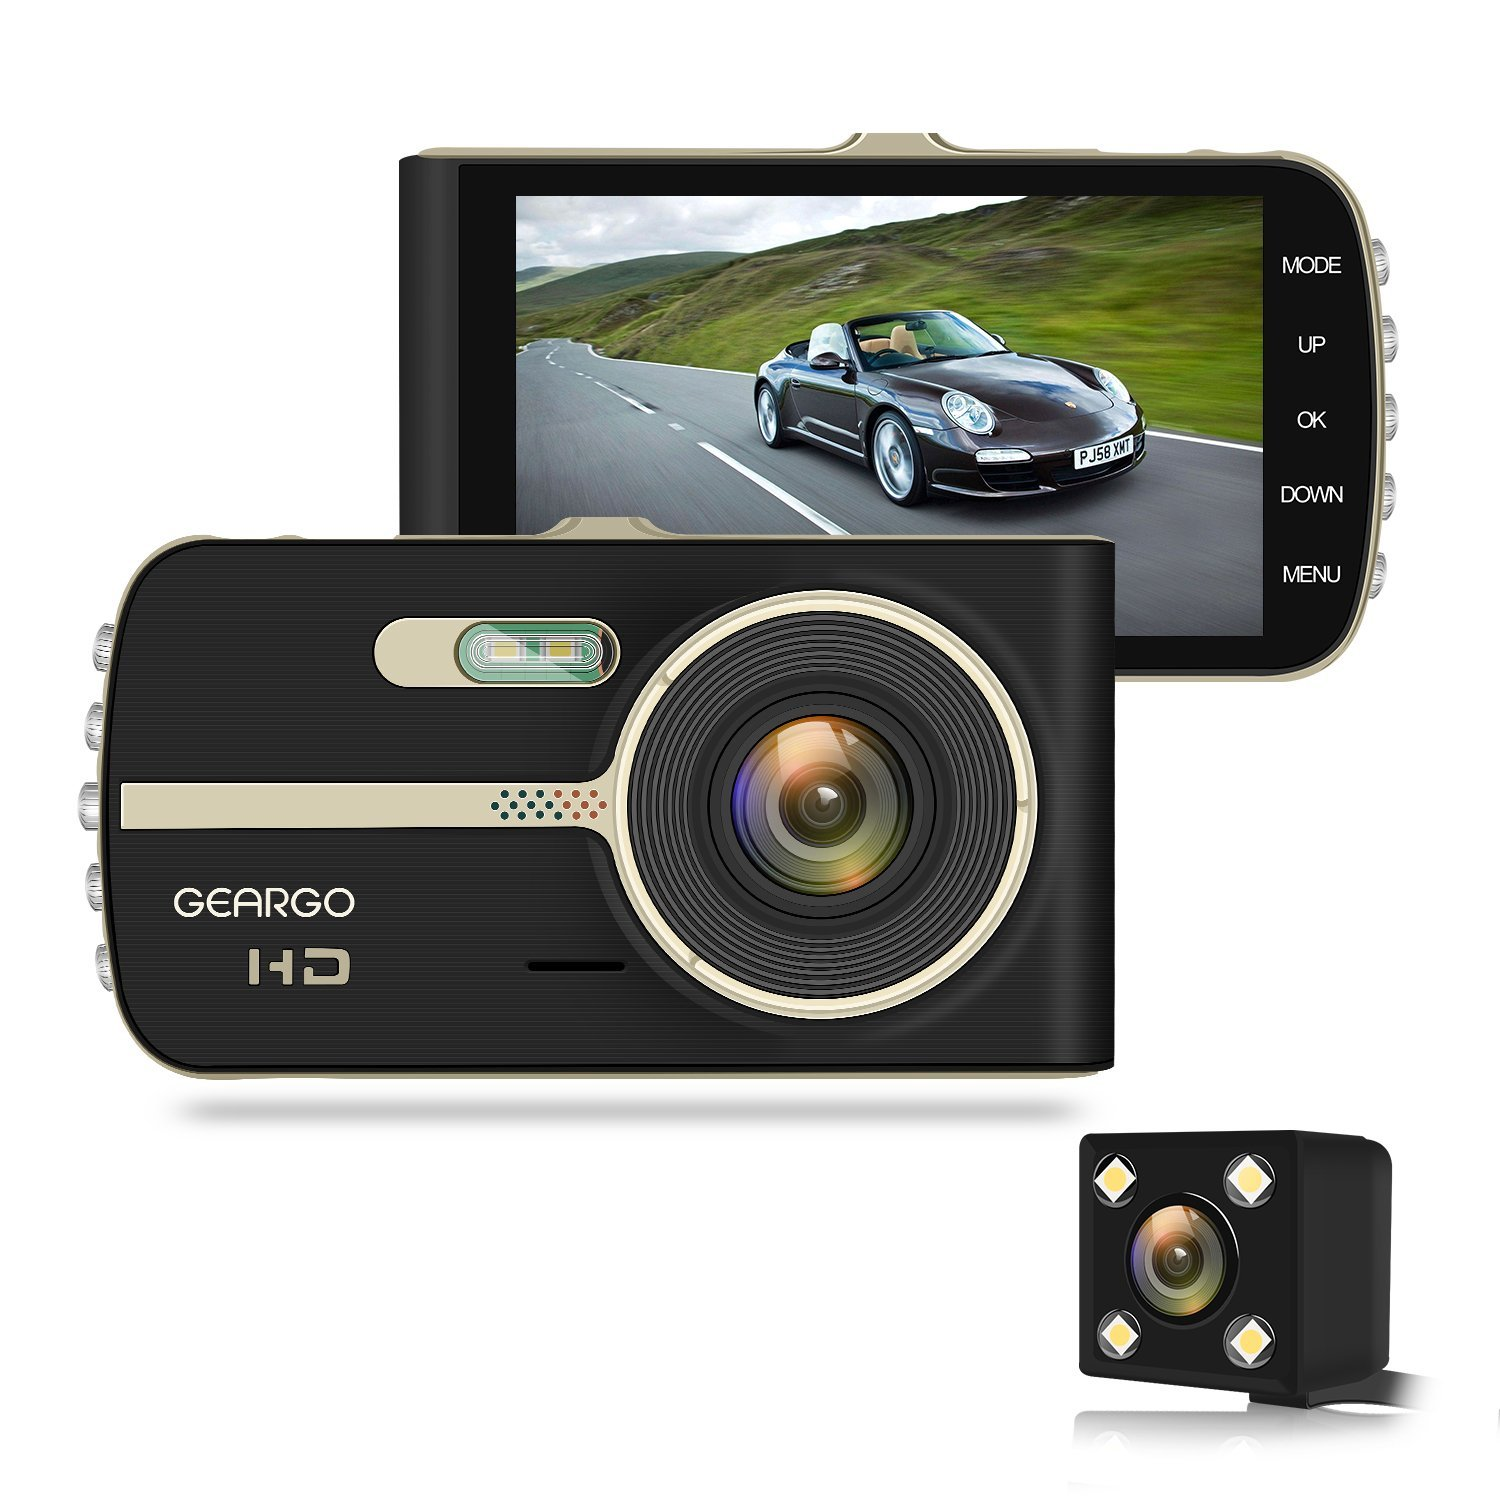 Dash Cam, GEARGO Dashboard Camera Full HD 1080P On-Dash Car Video Recorder 4 Inches Large Display Screen Car DVR, Dash Cams for Cars Front and Rear with Night Vision I980113